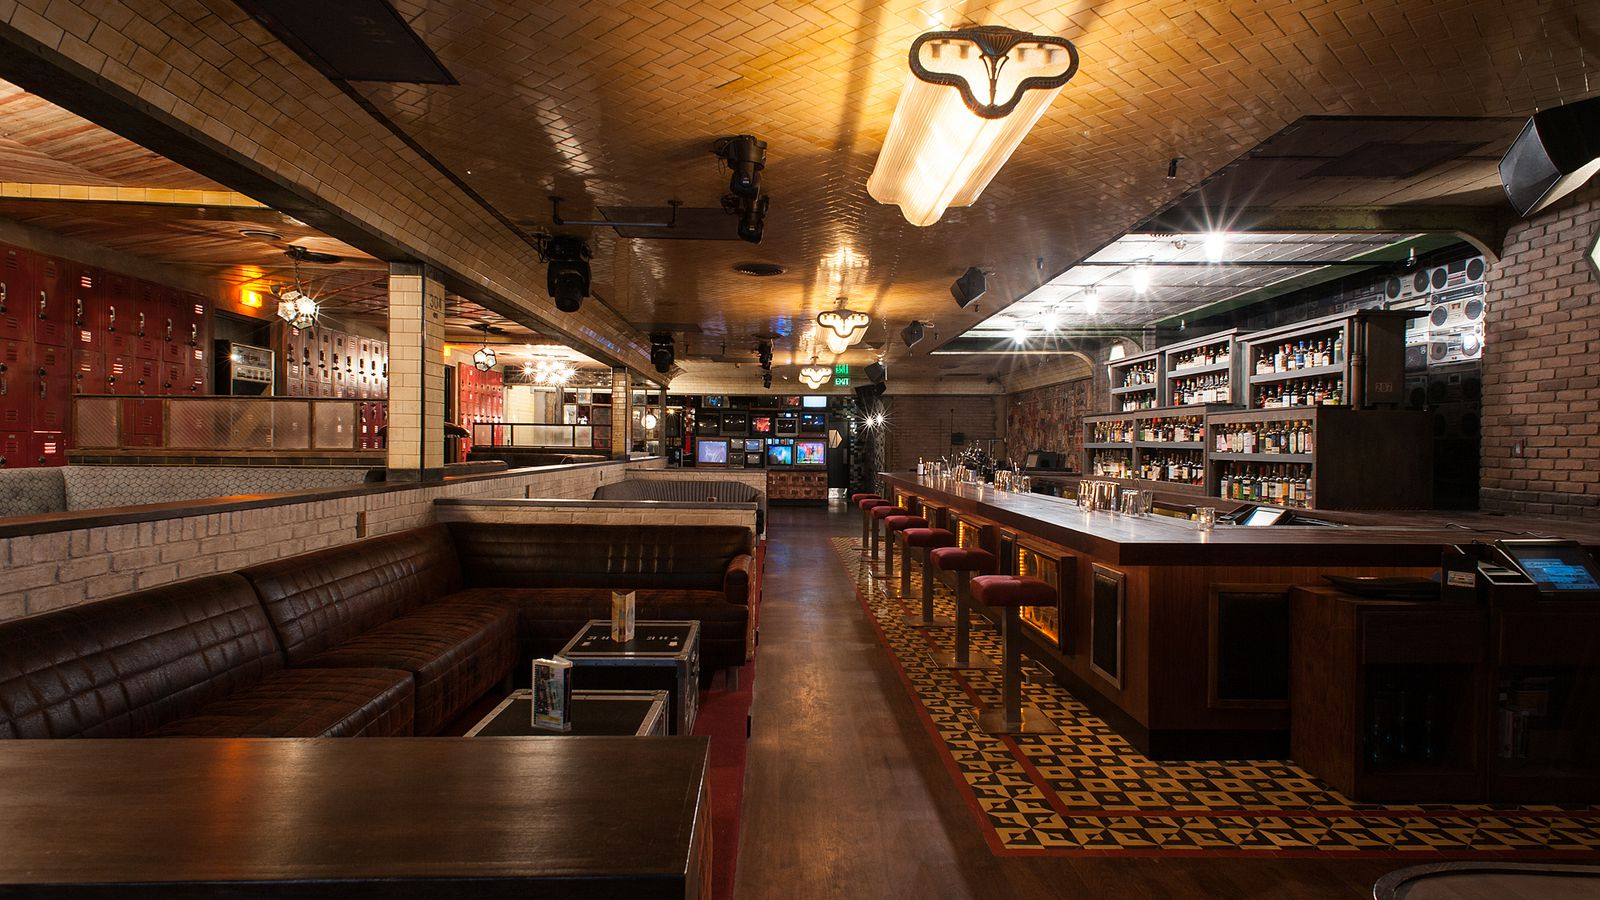 It Room: Check Out The Full Interior At The Houston Bros' Break